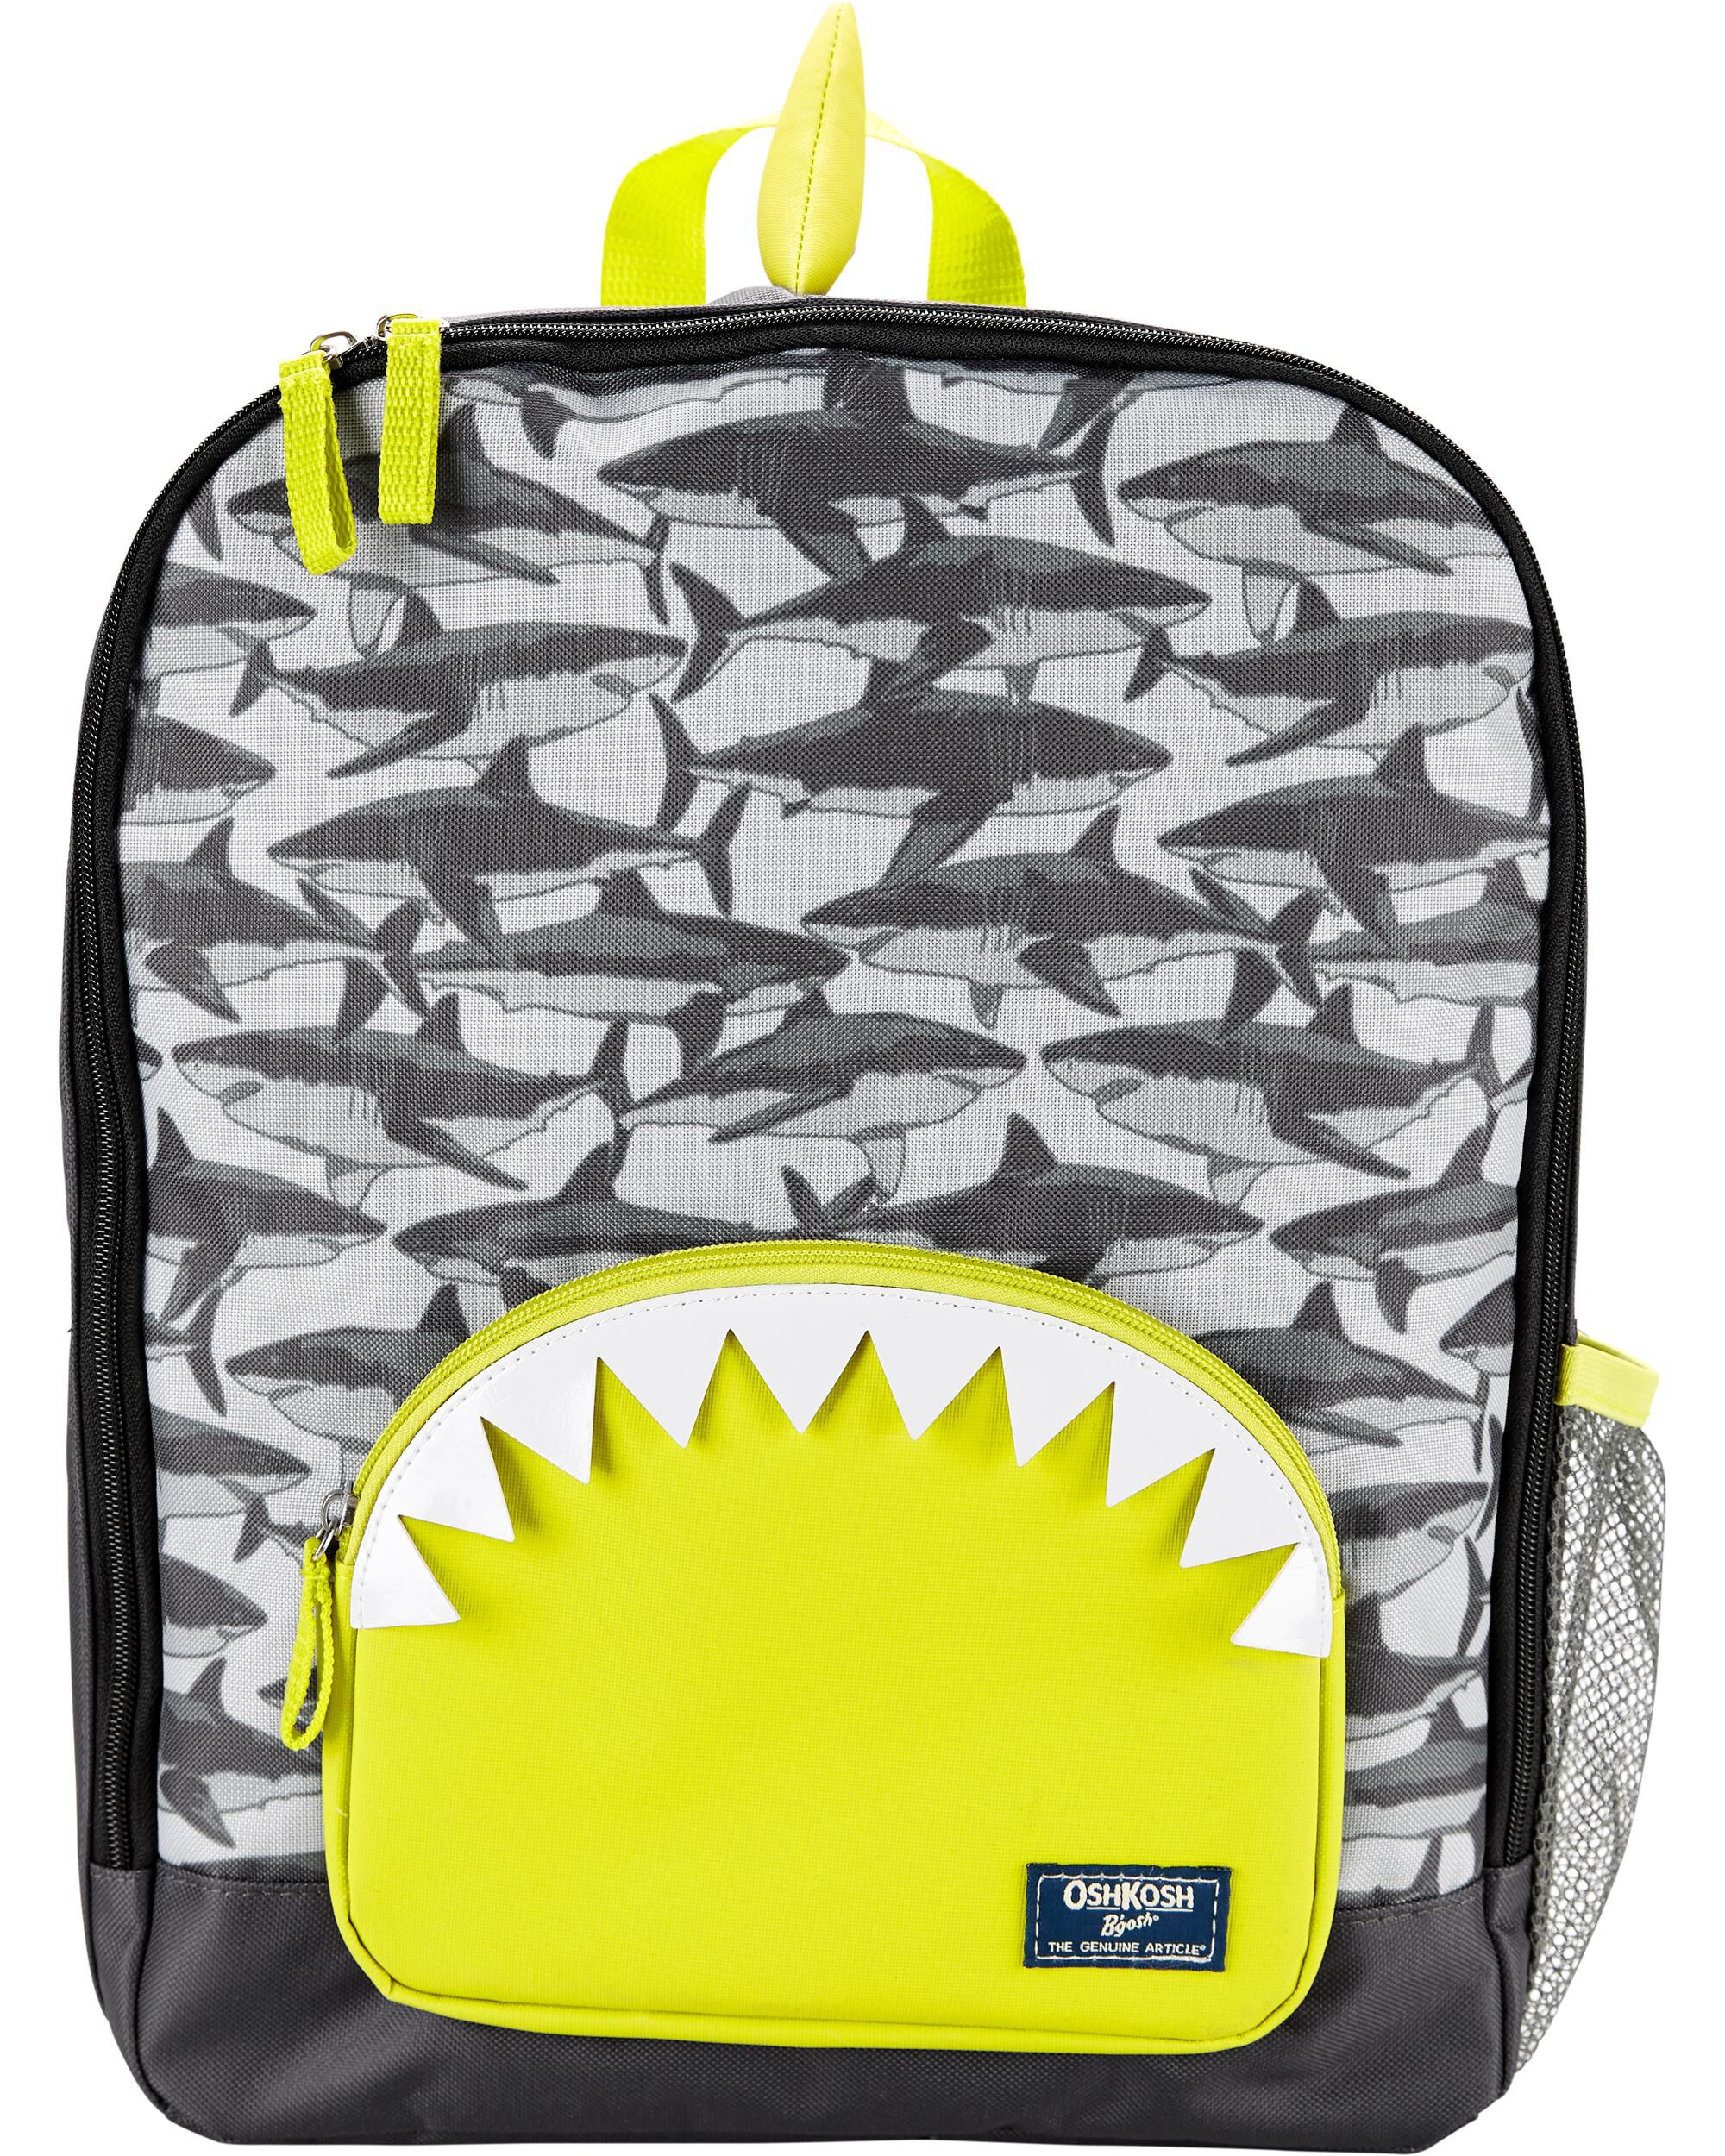 Oshkoshbgosh Shark Teeth Backpack